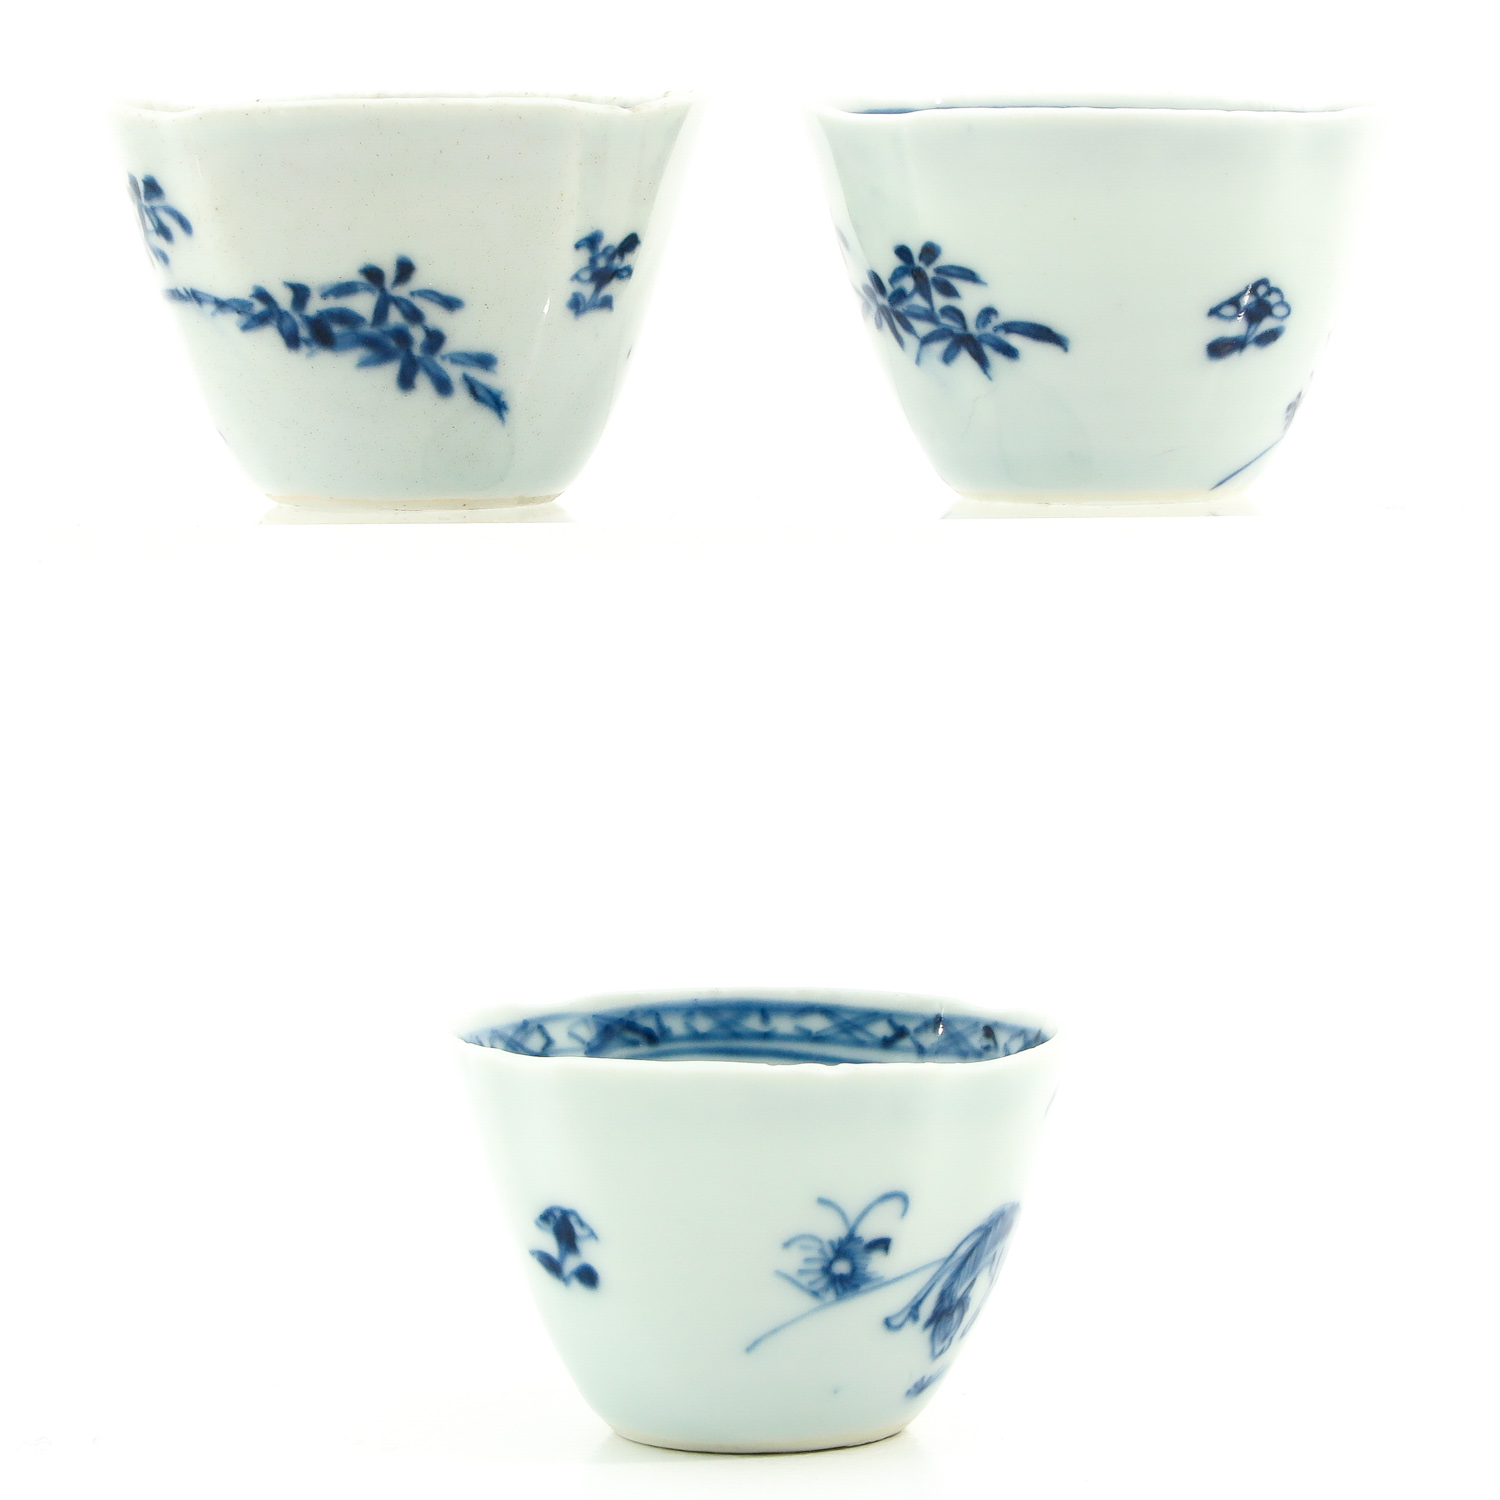 A Collection of 3 Cups and Saucers - Image 3 of 9